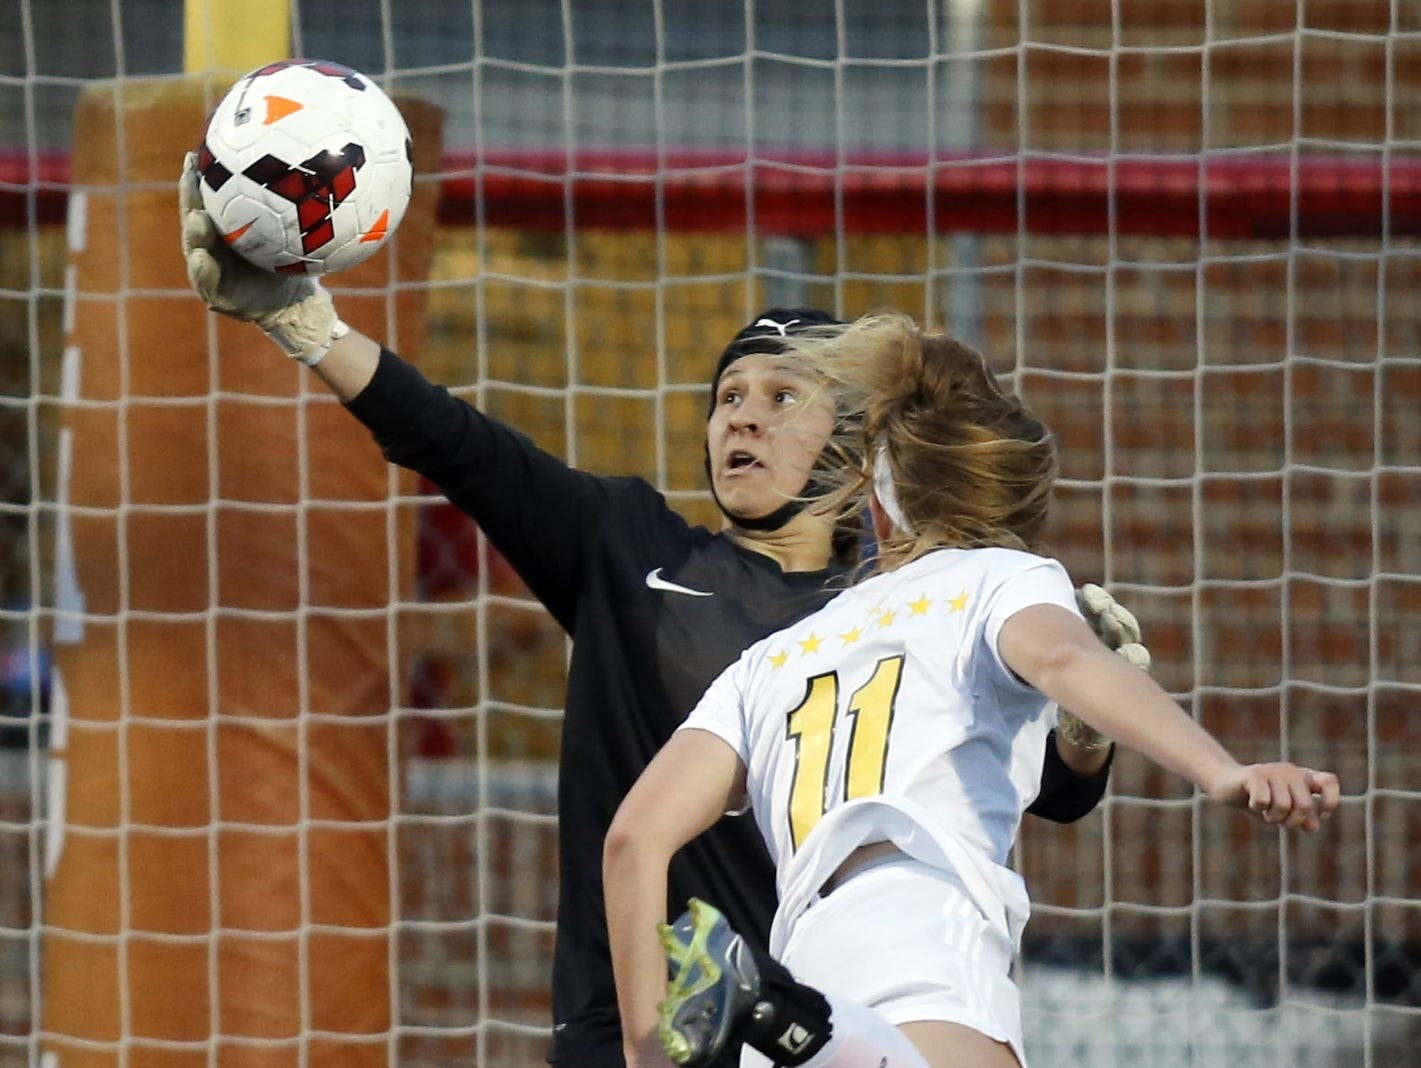 Caesar Rodney goalie Marianna Nuzzo makes a save on a point-blank header from Padua's Anne Brush in the first half of the DIAA Division I state title game at Smyrna High School on Friday.